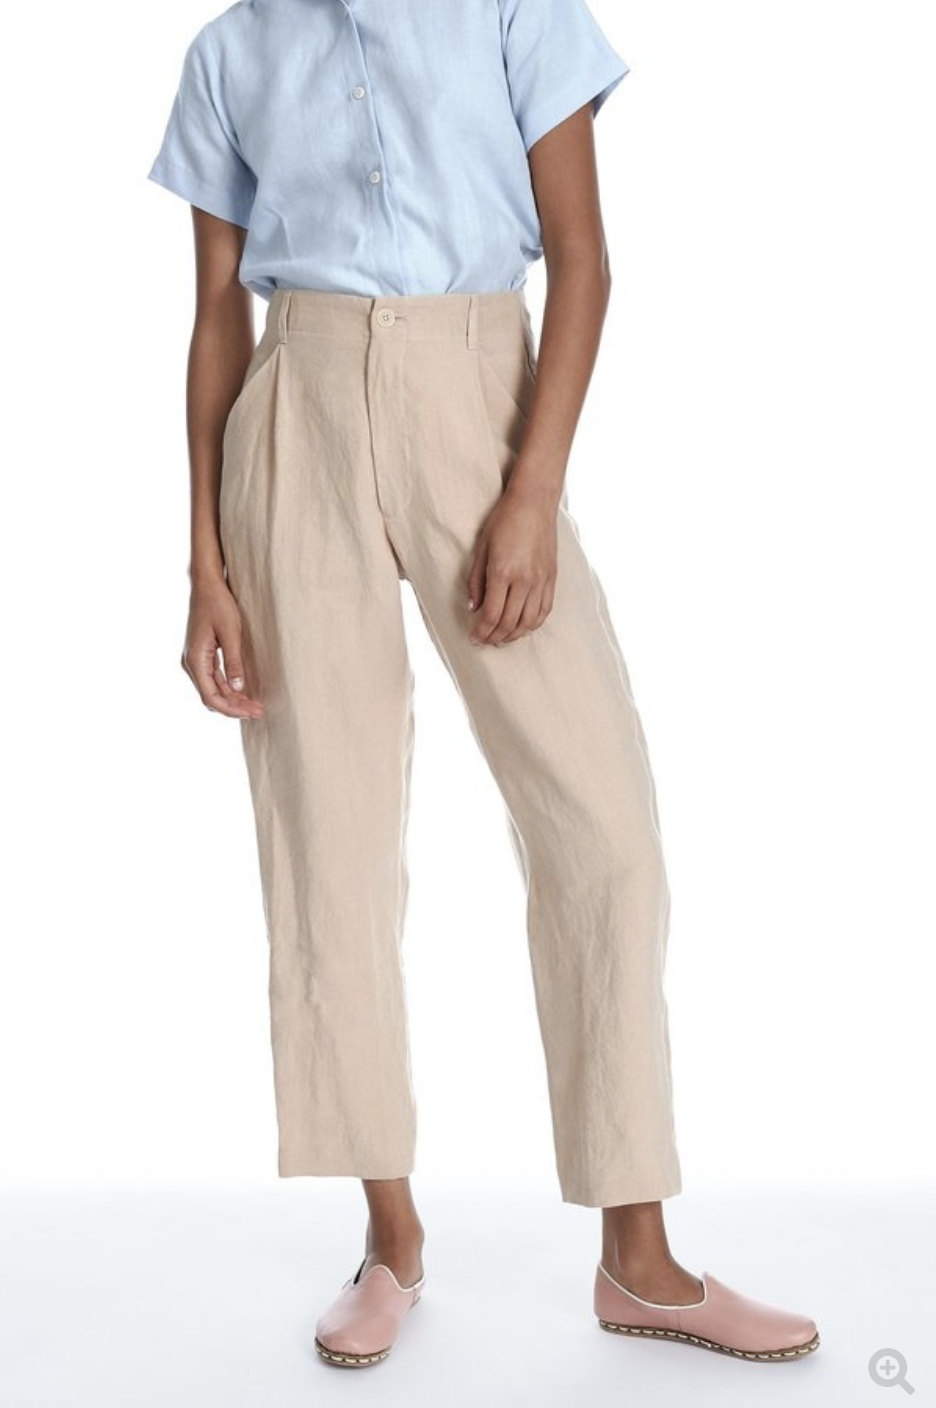 Blluemade Pant - I love the minimal styling on these but wish they were in something besides linen, although from my understanding this is kind of the Bllumade signature. The single pleat is super subtle but cutting. Nice subtle taper to the leg — although I'd love to see it a little less subtle. I love how the top of the pocket meets the pleat as well, it gives a sense of intention to the design. They aren't quite what I want, but A for execution.